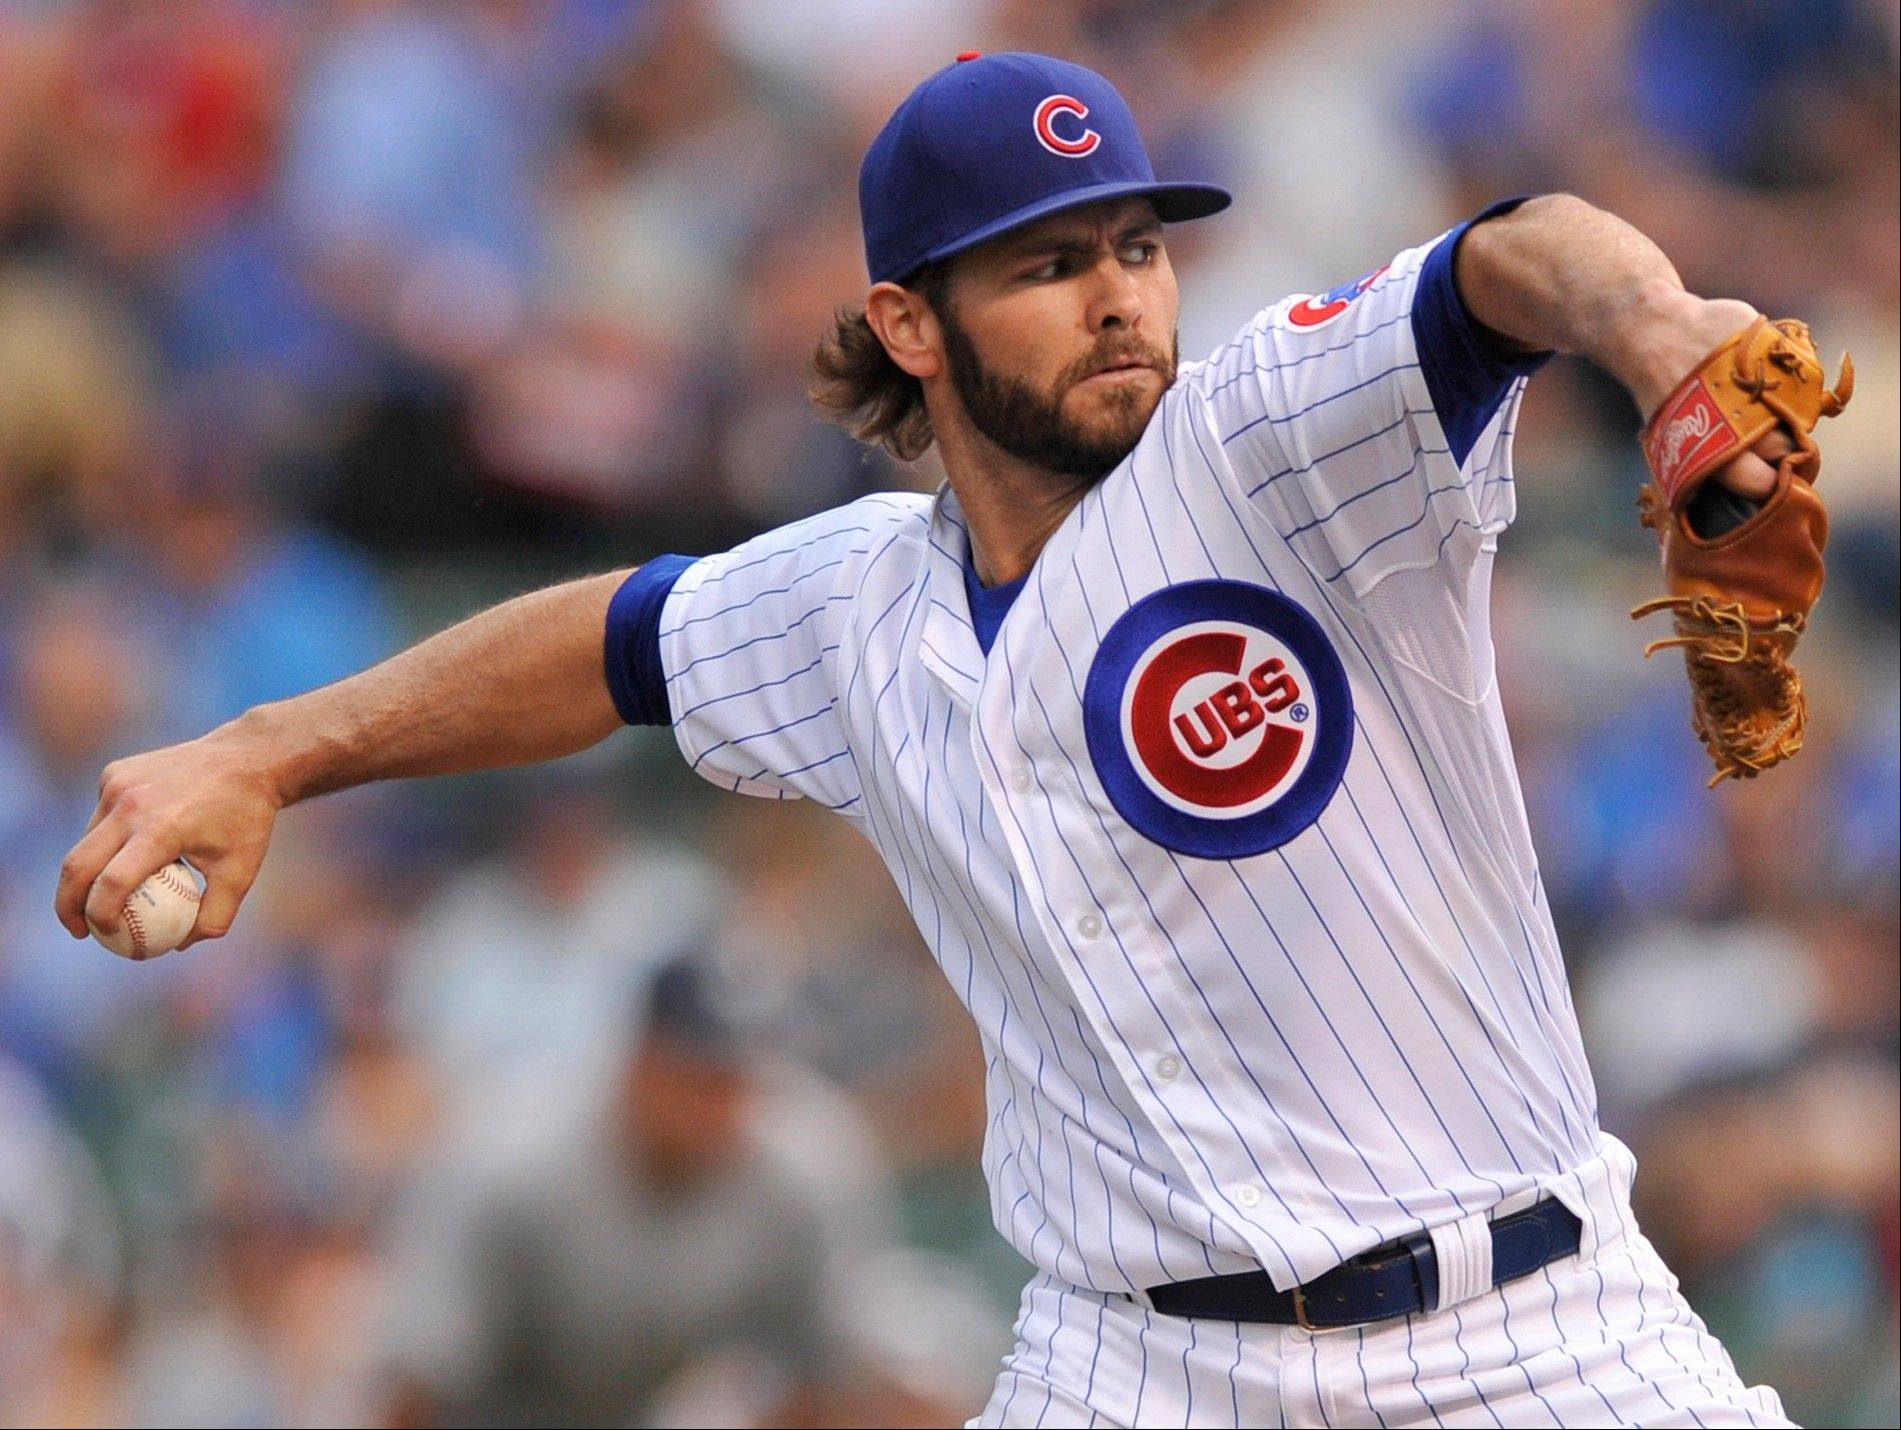 Cubs starter Jake Arrieta delivers a pitch during the first inning Saturday against the Milwaukee Brewers in Chicago.